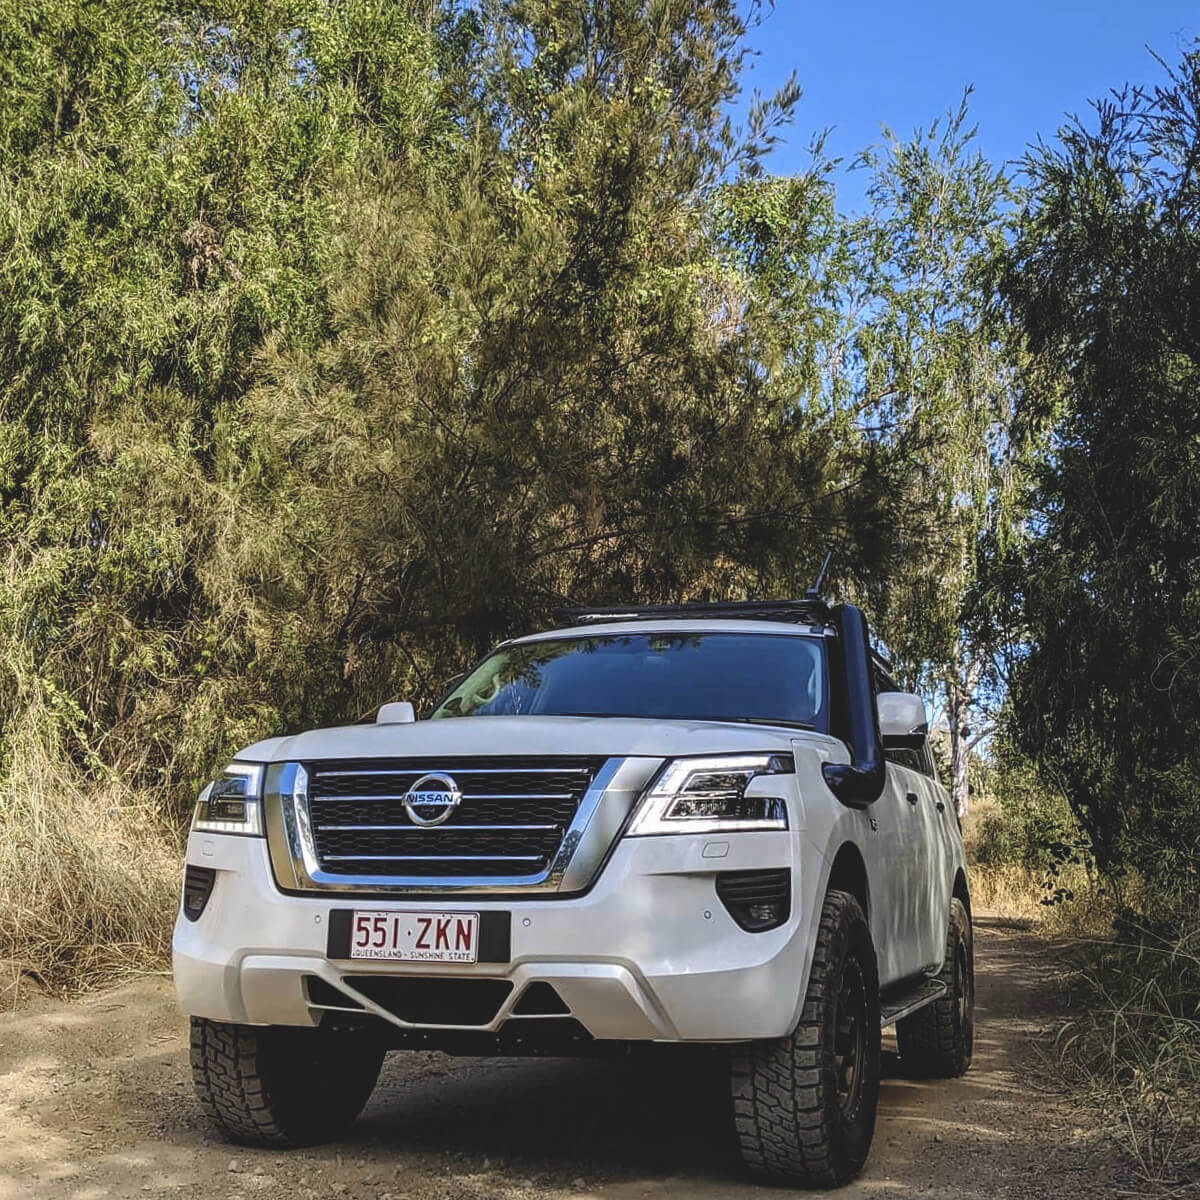 5″ Stainless steel snorkel on a Nissan Patrol Y62